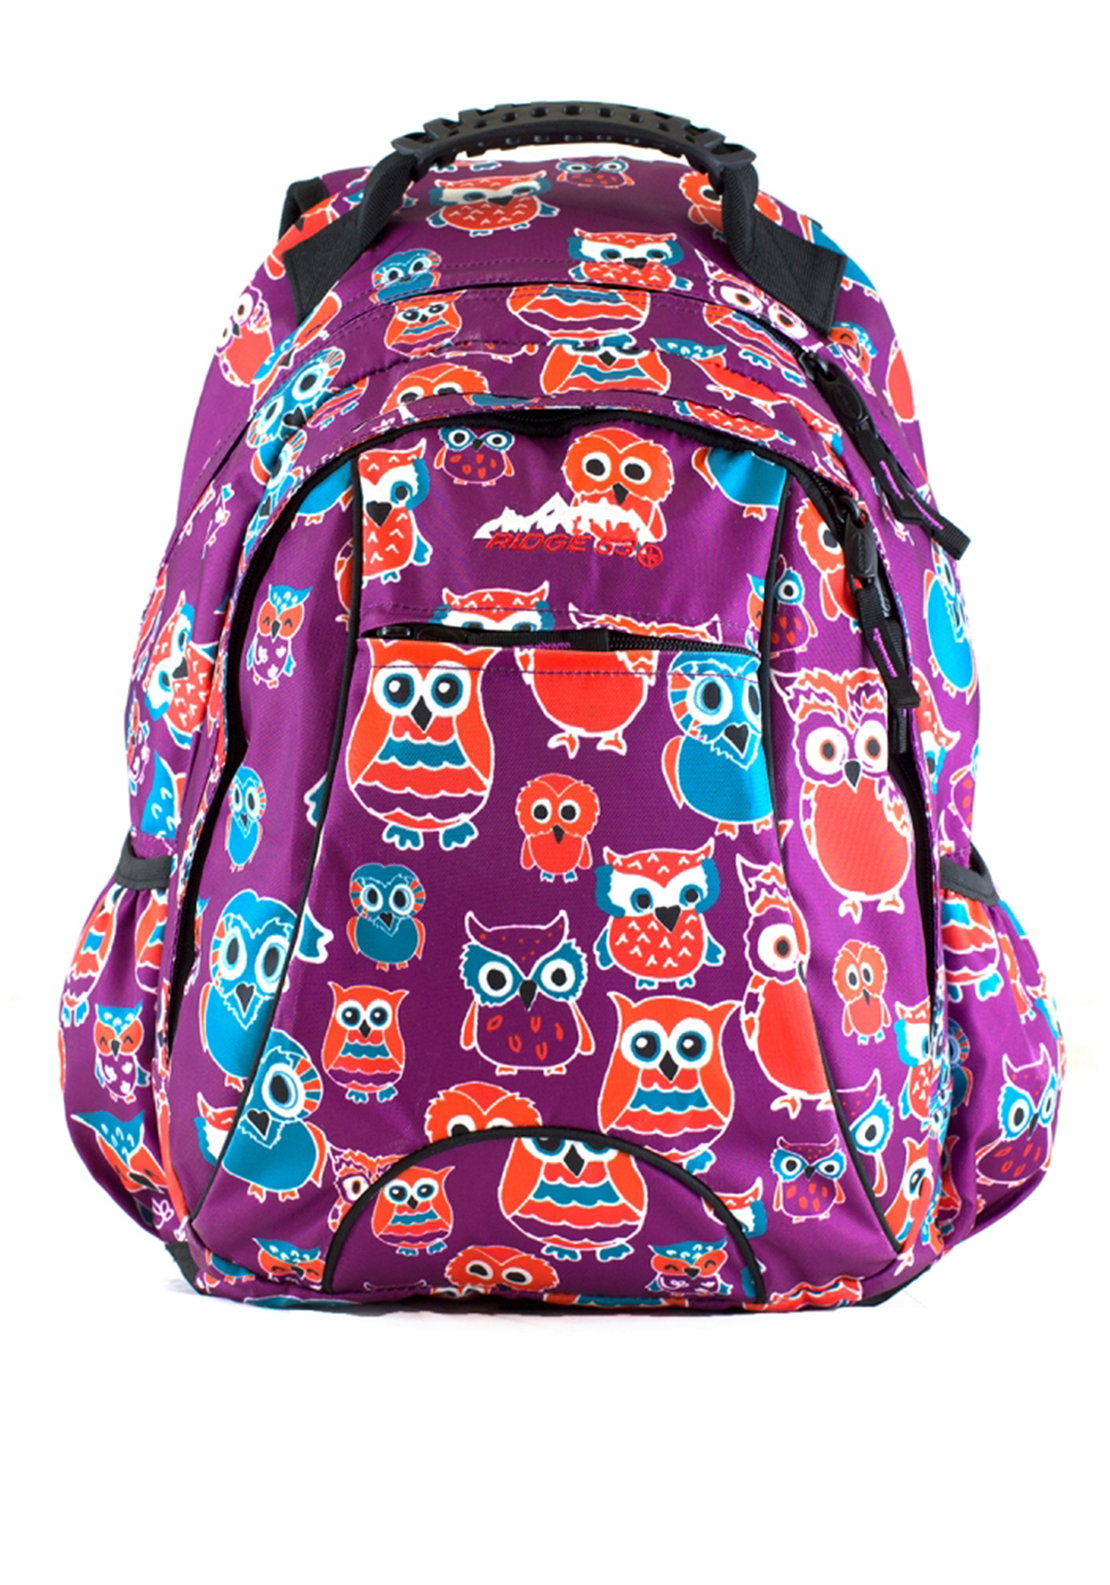 Ridge 53 Salem Owl Backpack Schoolbag, Purple